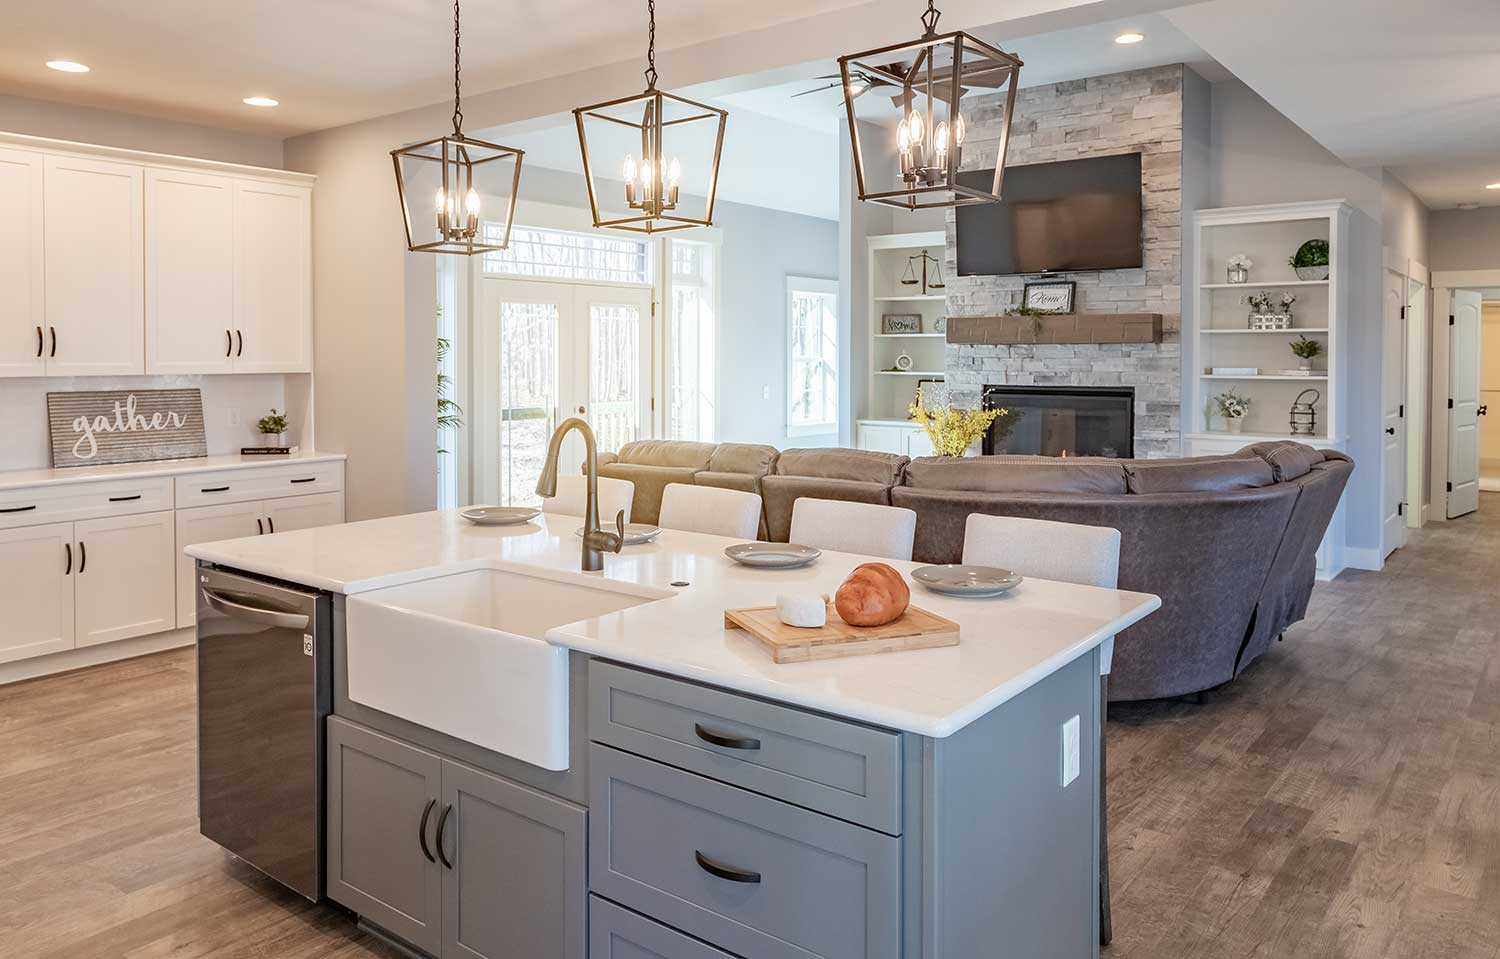 The Hearthstone is a 2,590 square foot, modern farmhouse style home with super sized covered front porch.